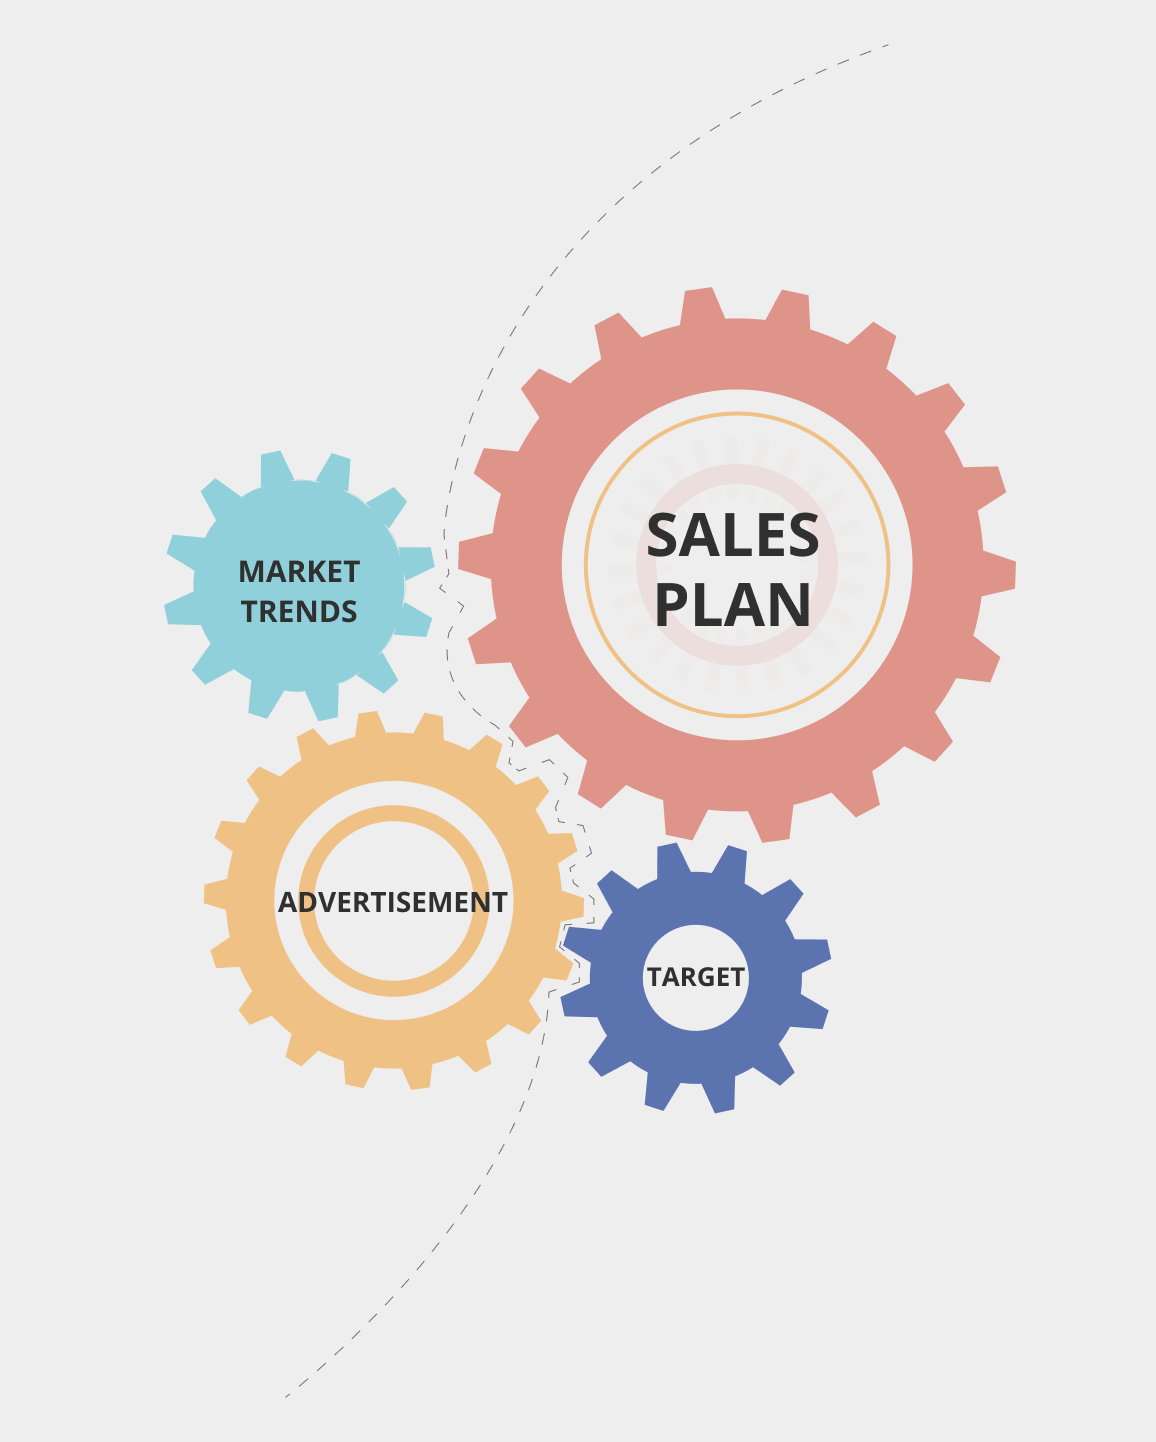 Sales Plan for growing business